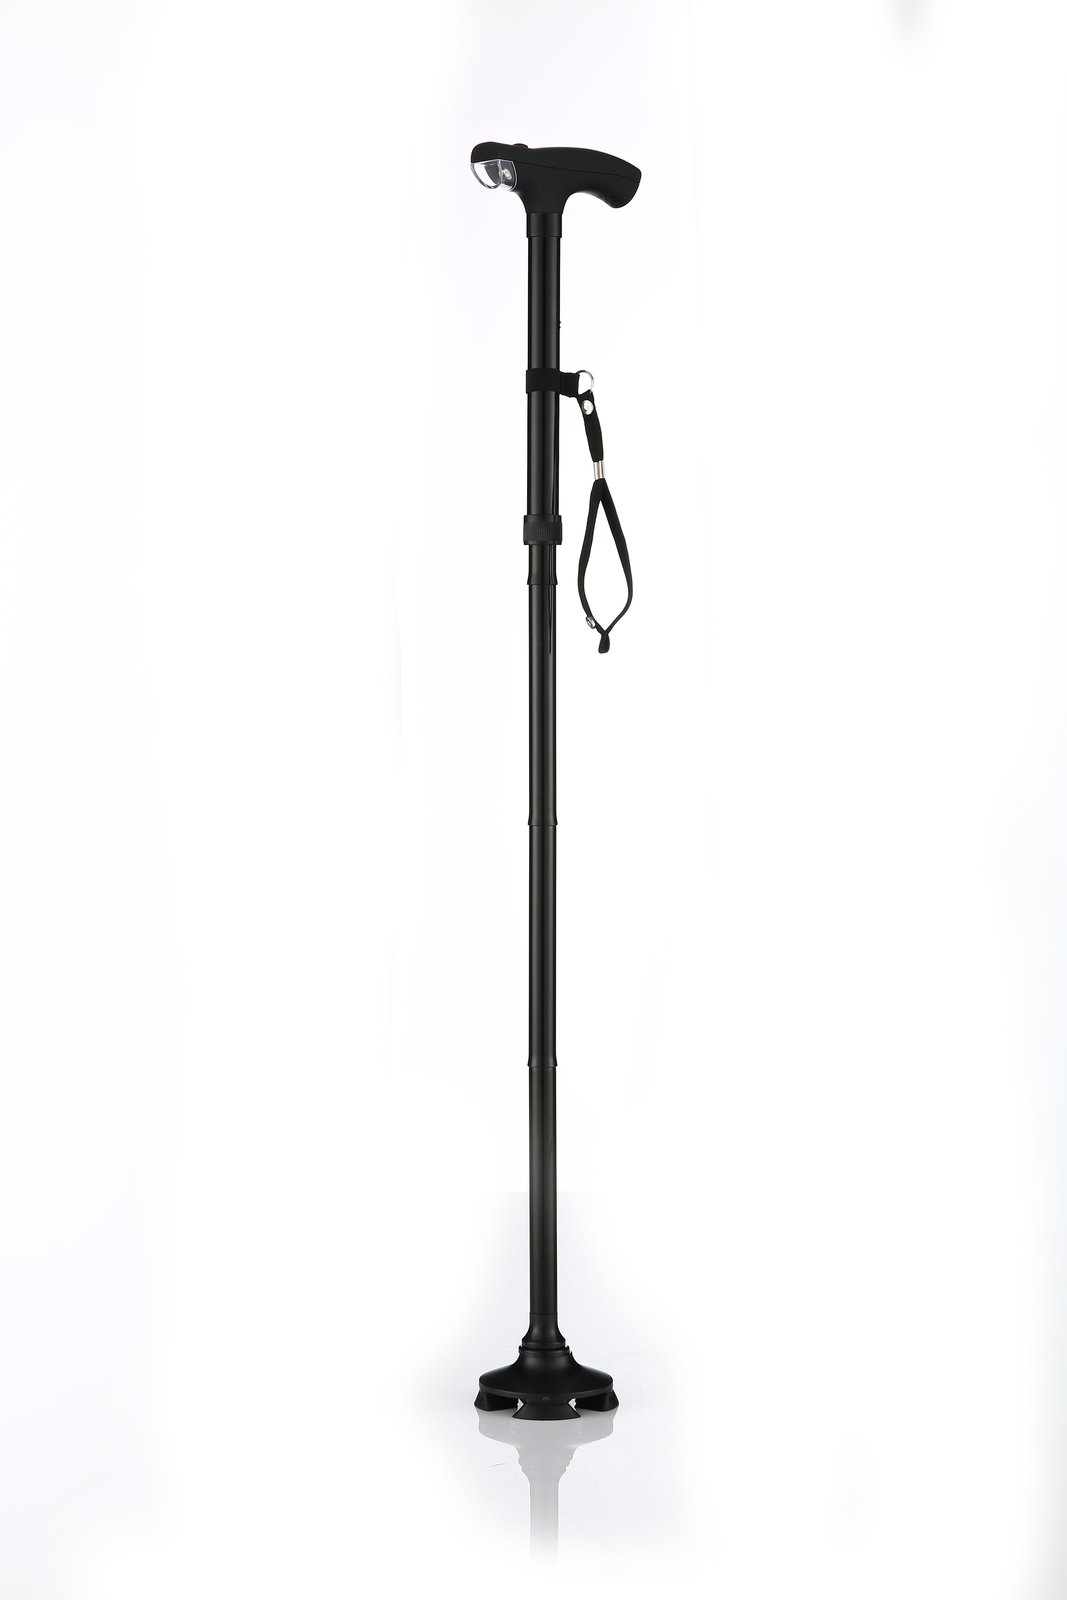 Fold Up Cane As Seen On Tv Canes Walking Sticks